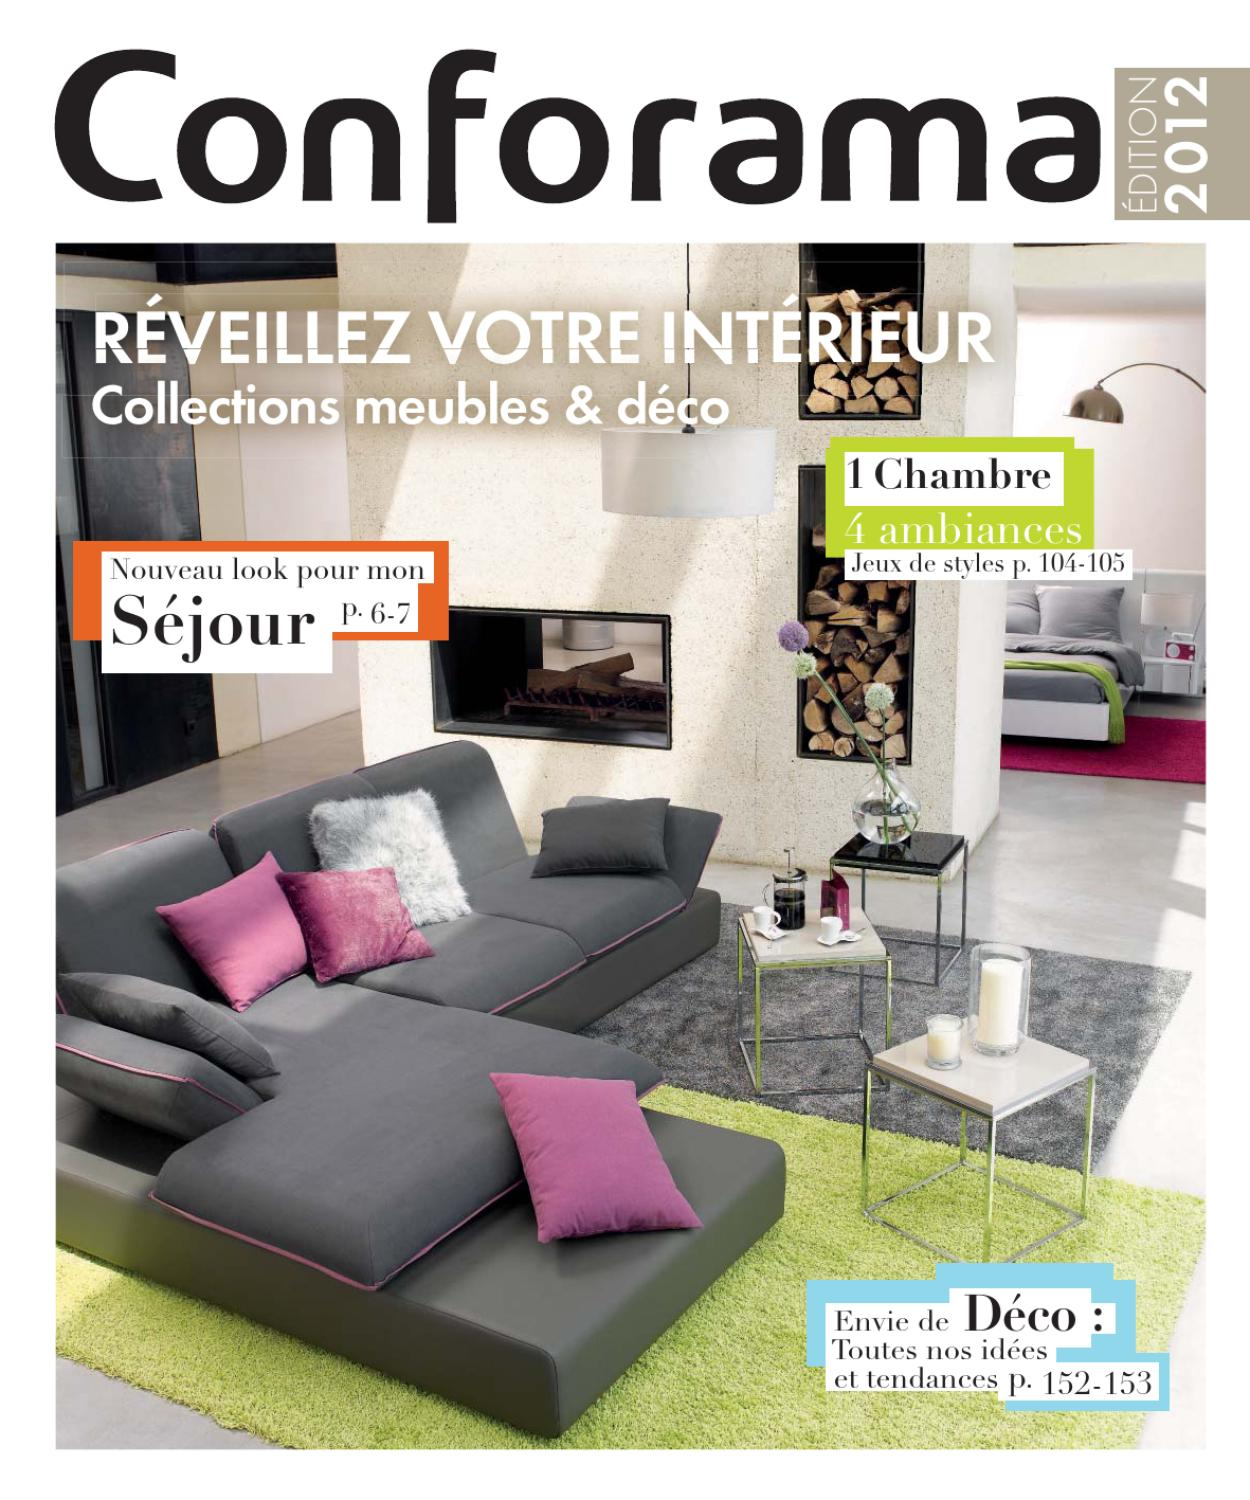 Conforama La Rochelle Conforama Fr Meubles Déco2012 By Proomo France Issuu